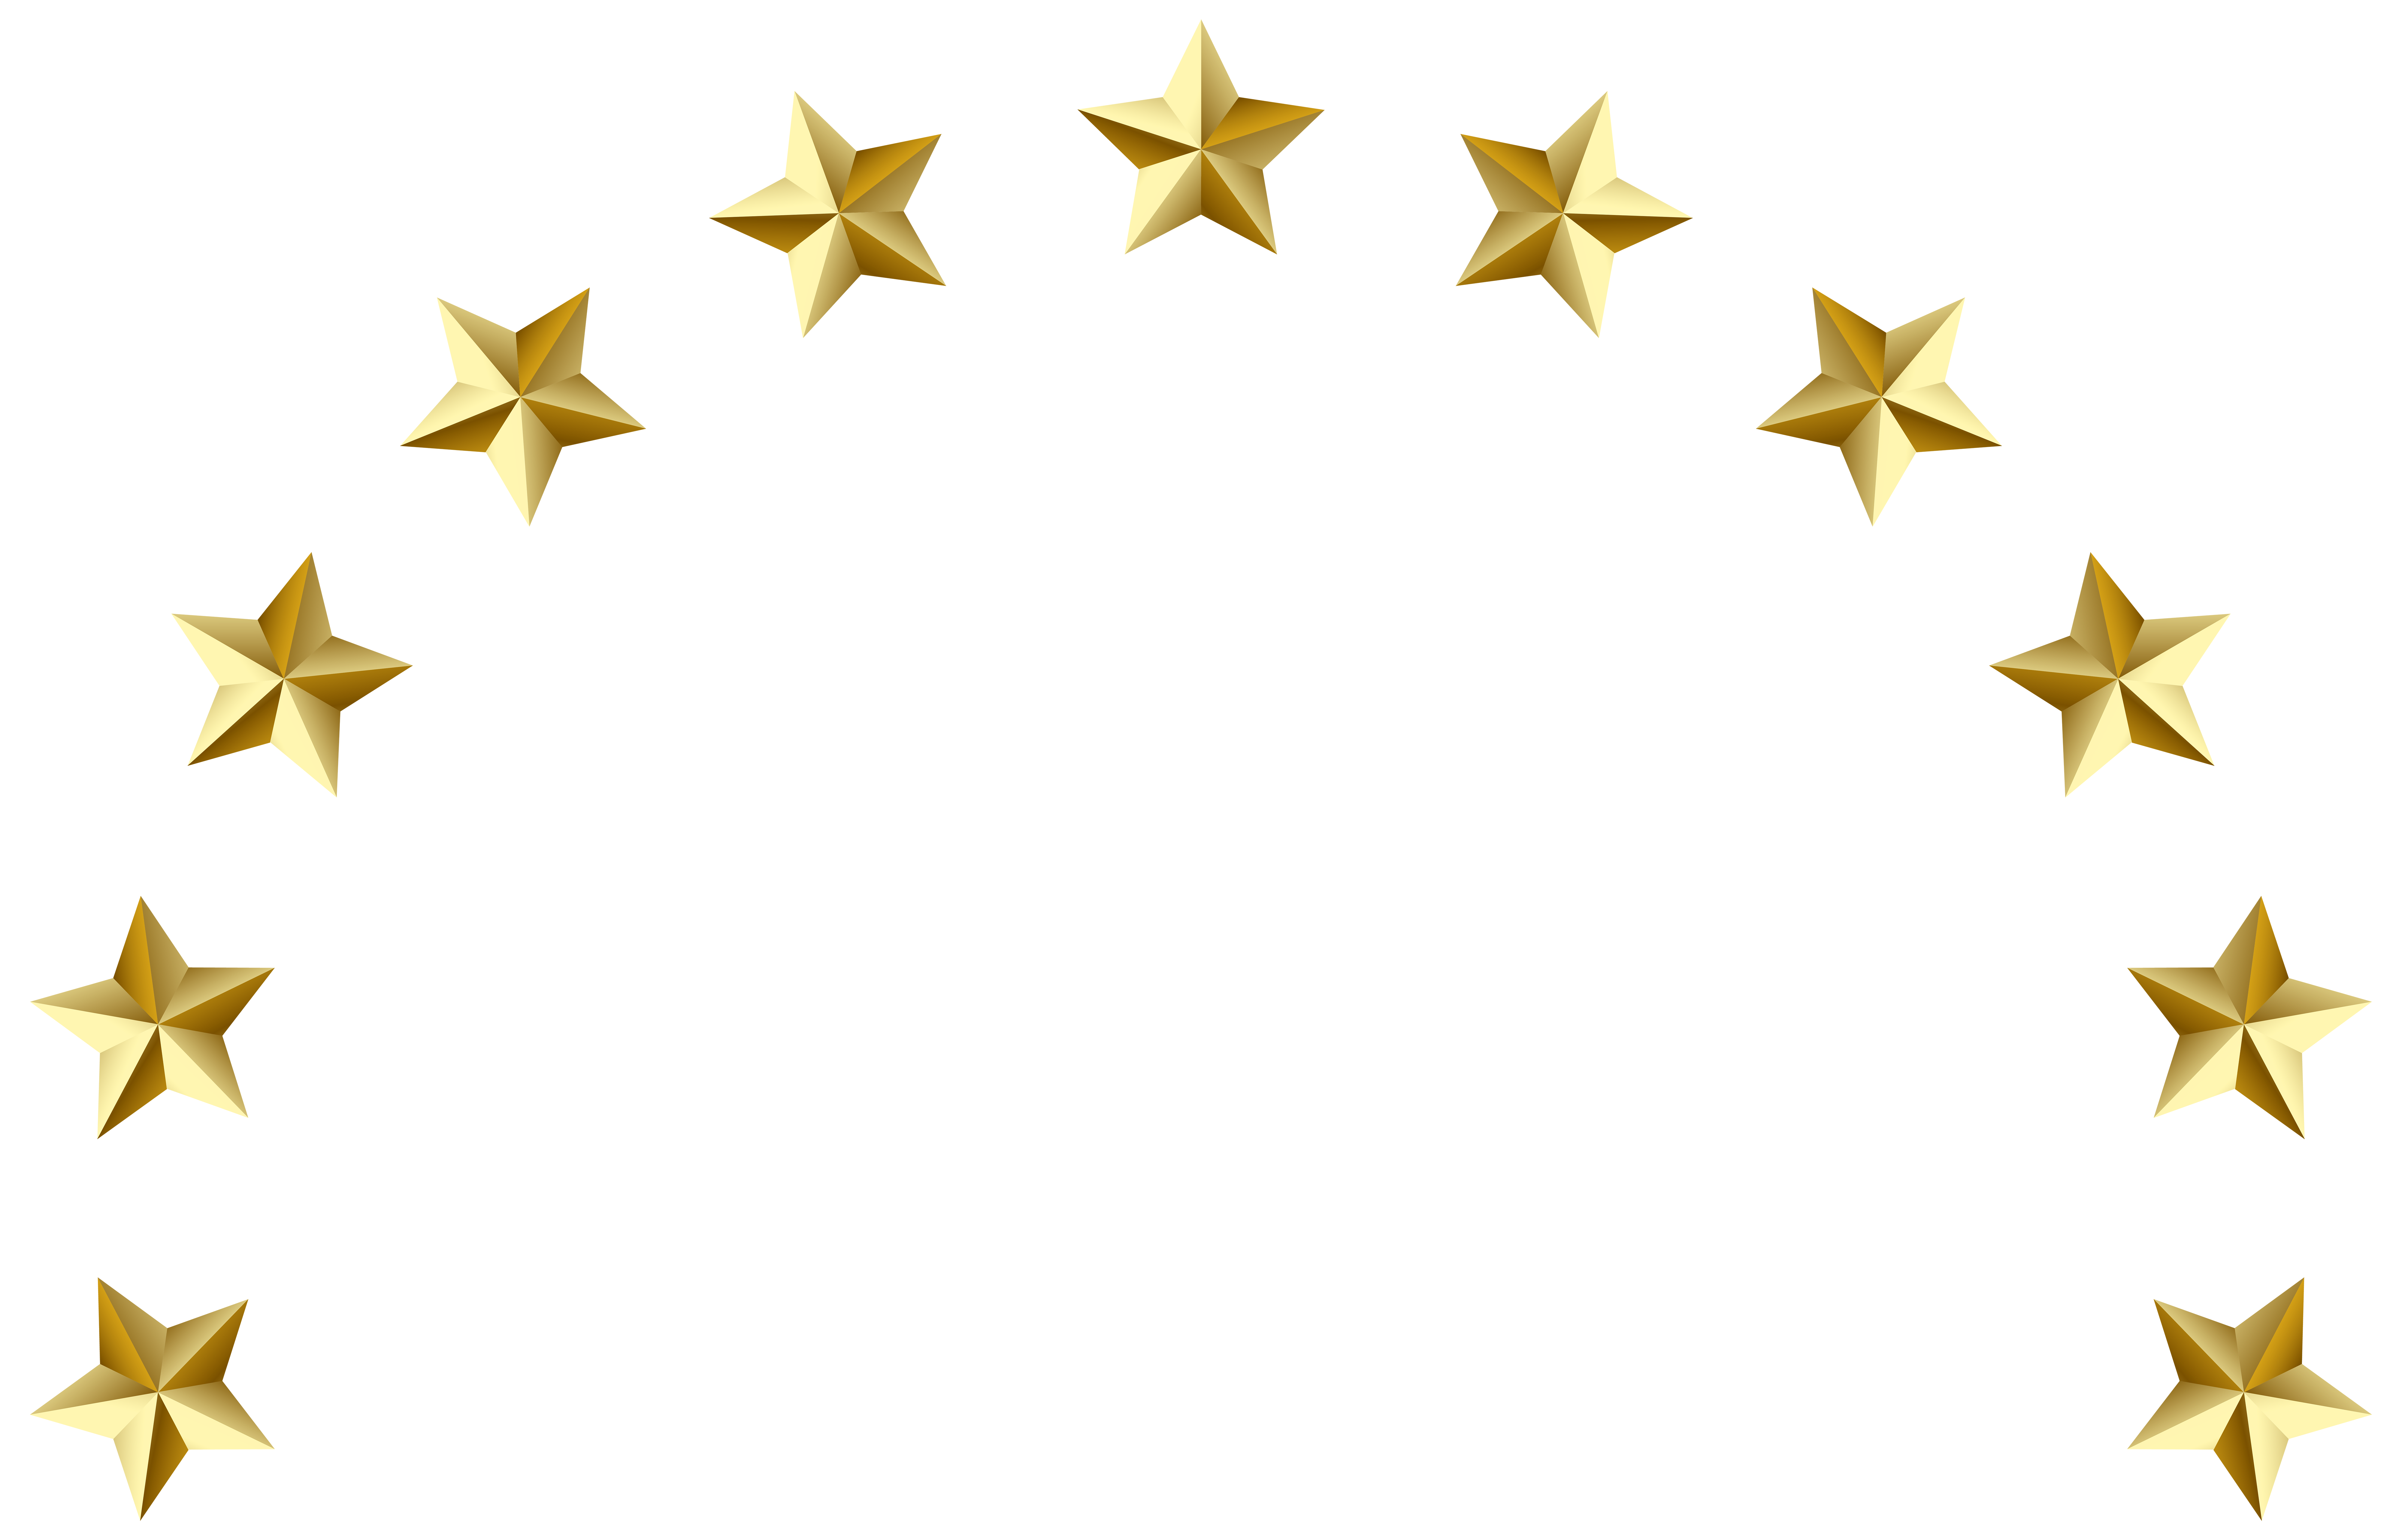 Star clipart border with a transparent background clip art free stock Star Decoration Transparent PNG Clip Art Image | Gallery ... clip art free stock